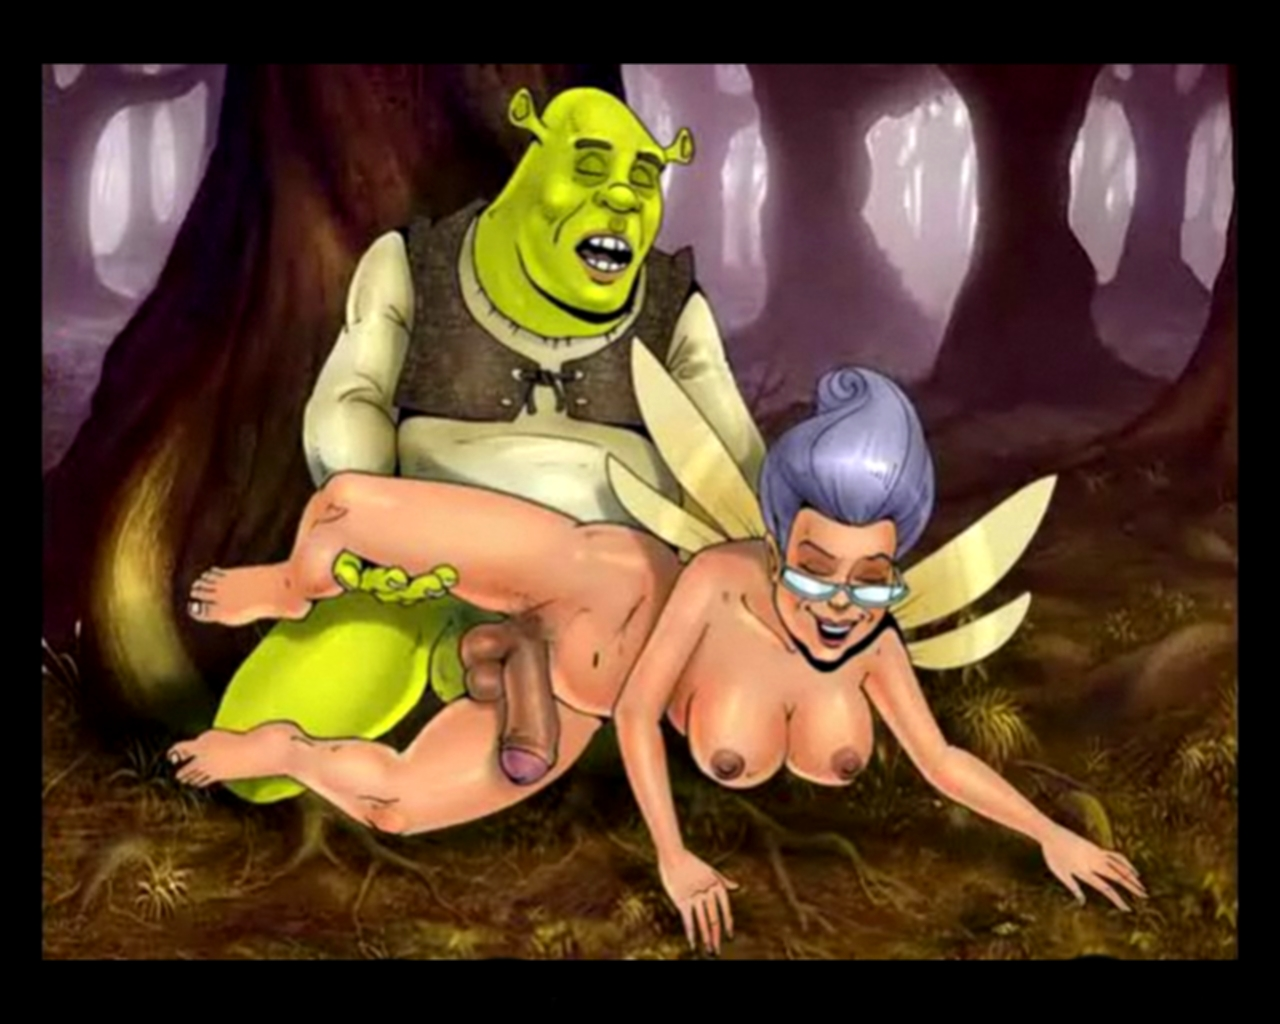 Nude fiona from shrek pics sex videos